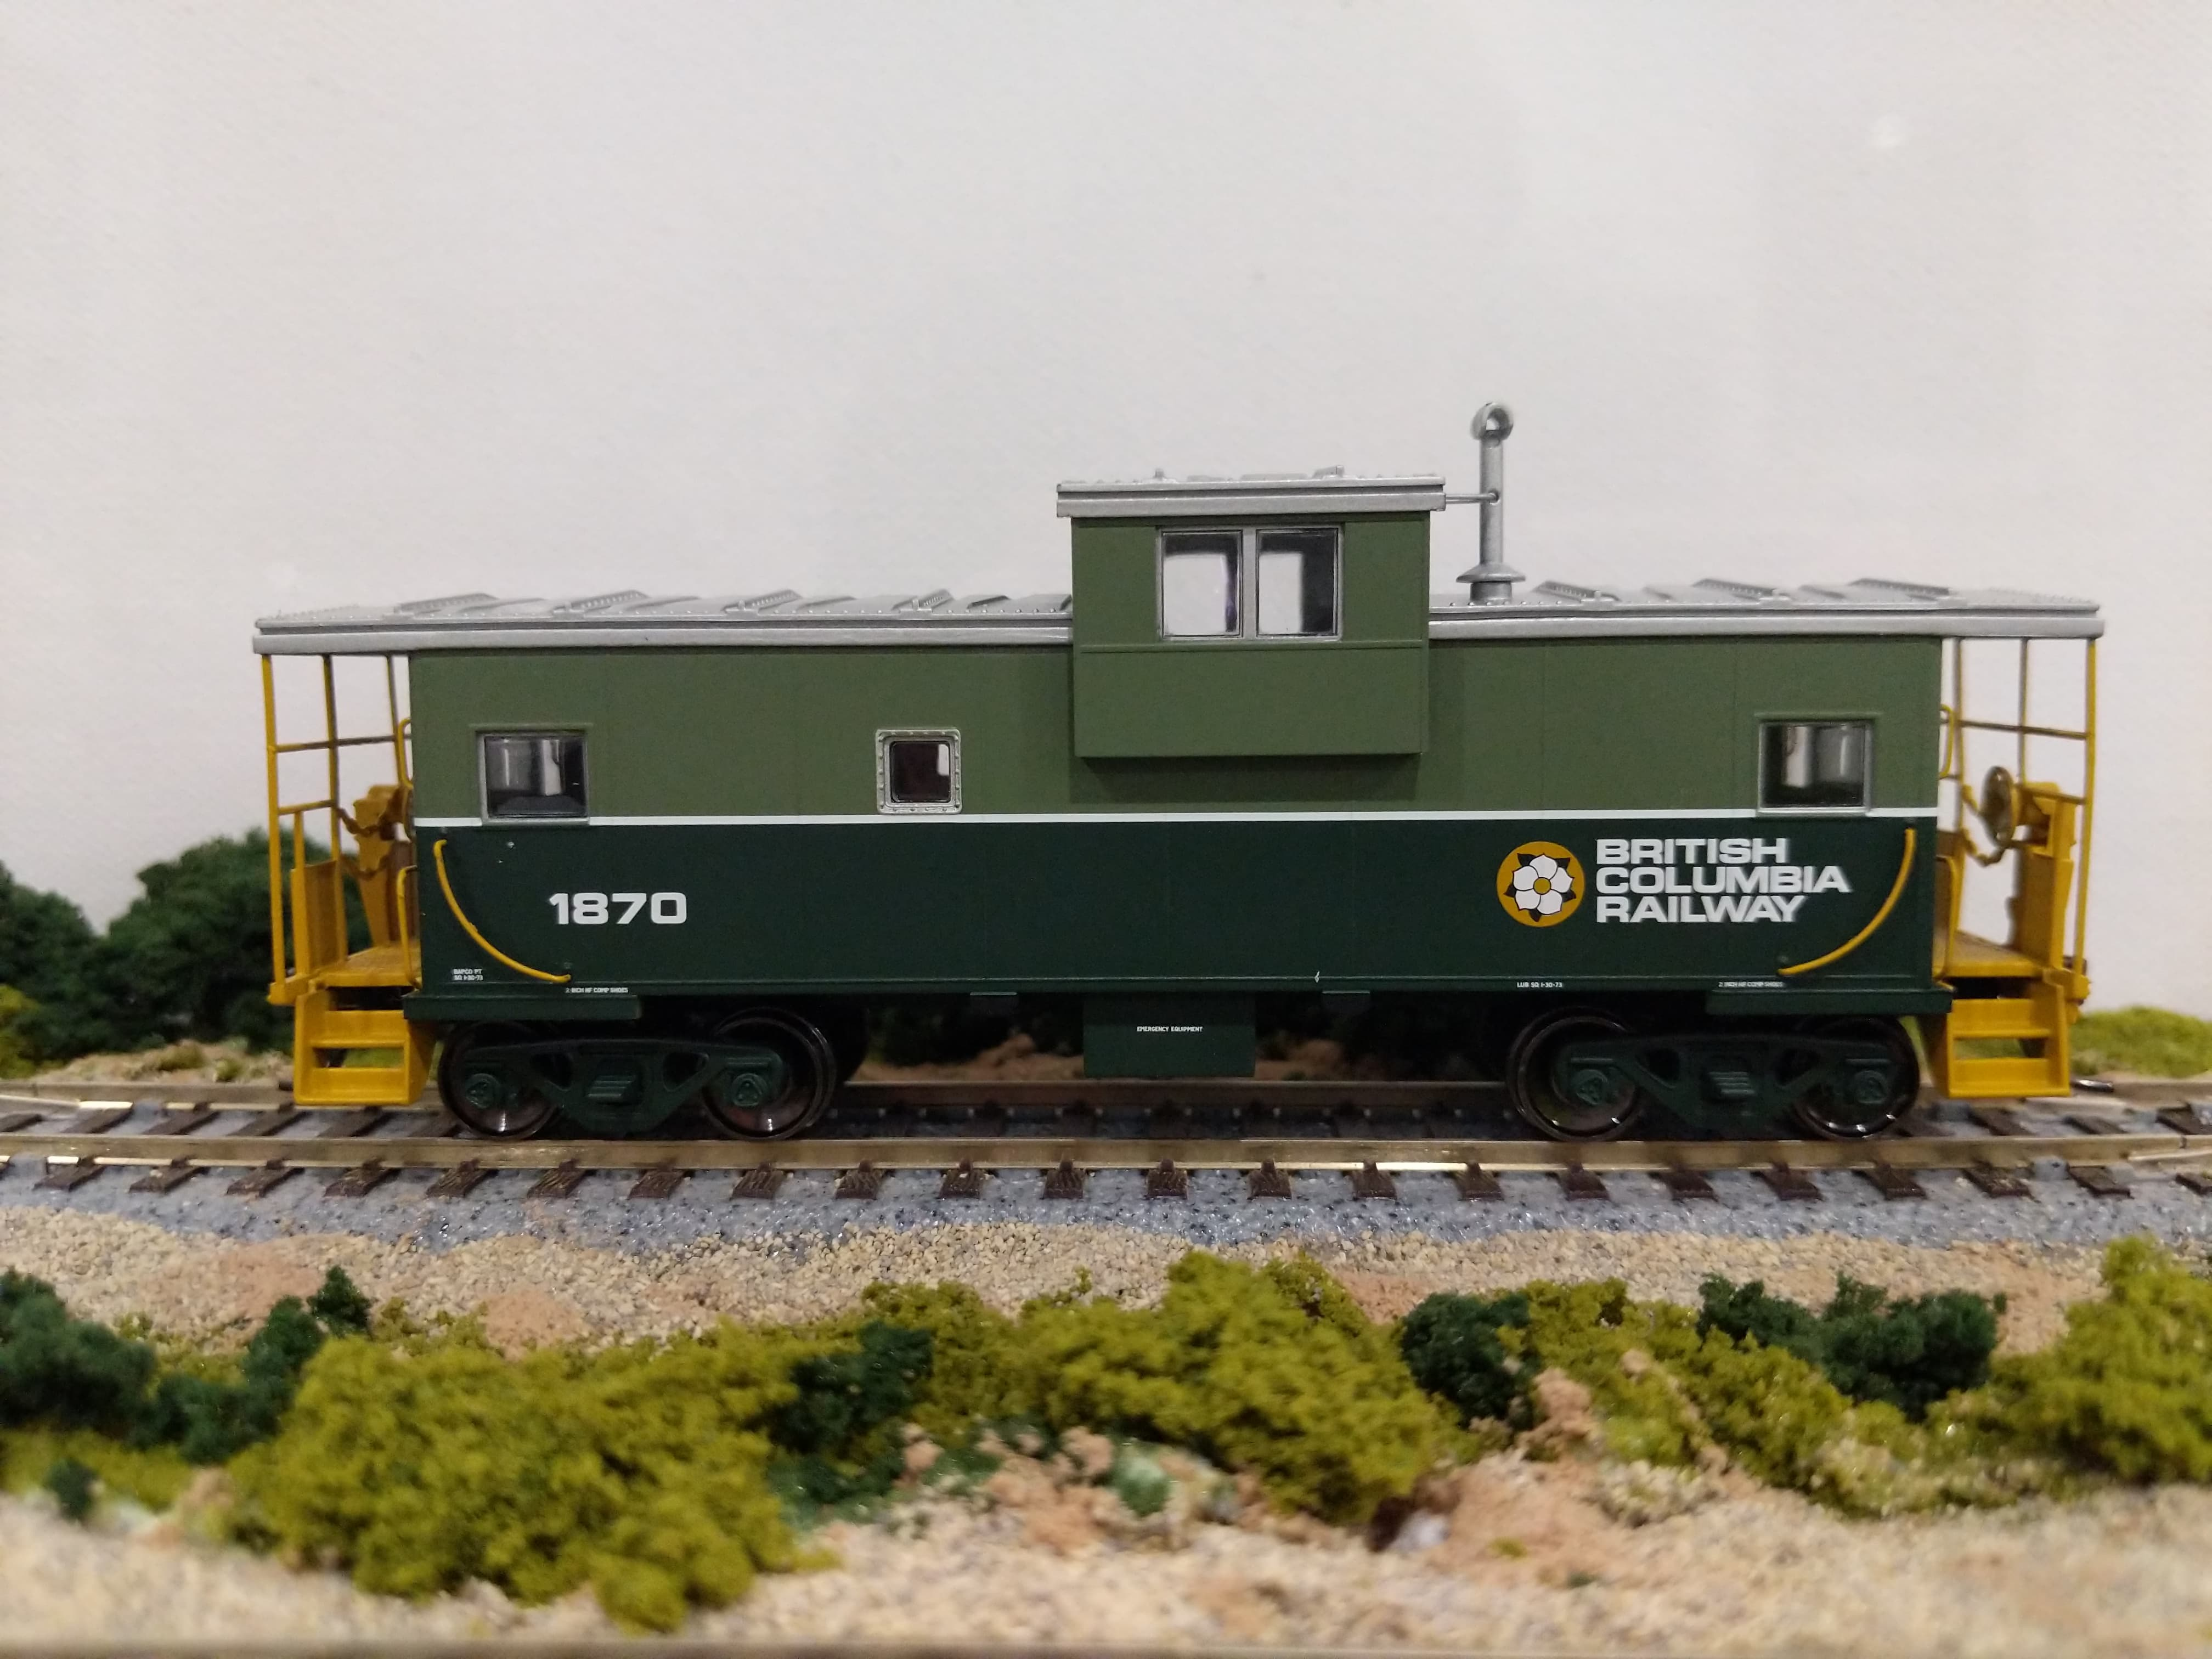 Atlas RTR 20005020 - Extended Vision Master Caboose - British Columbia Railroad #1874